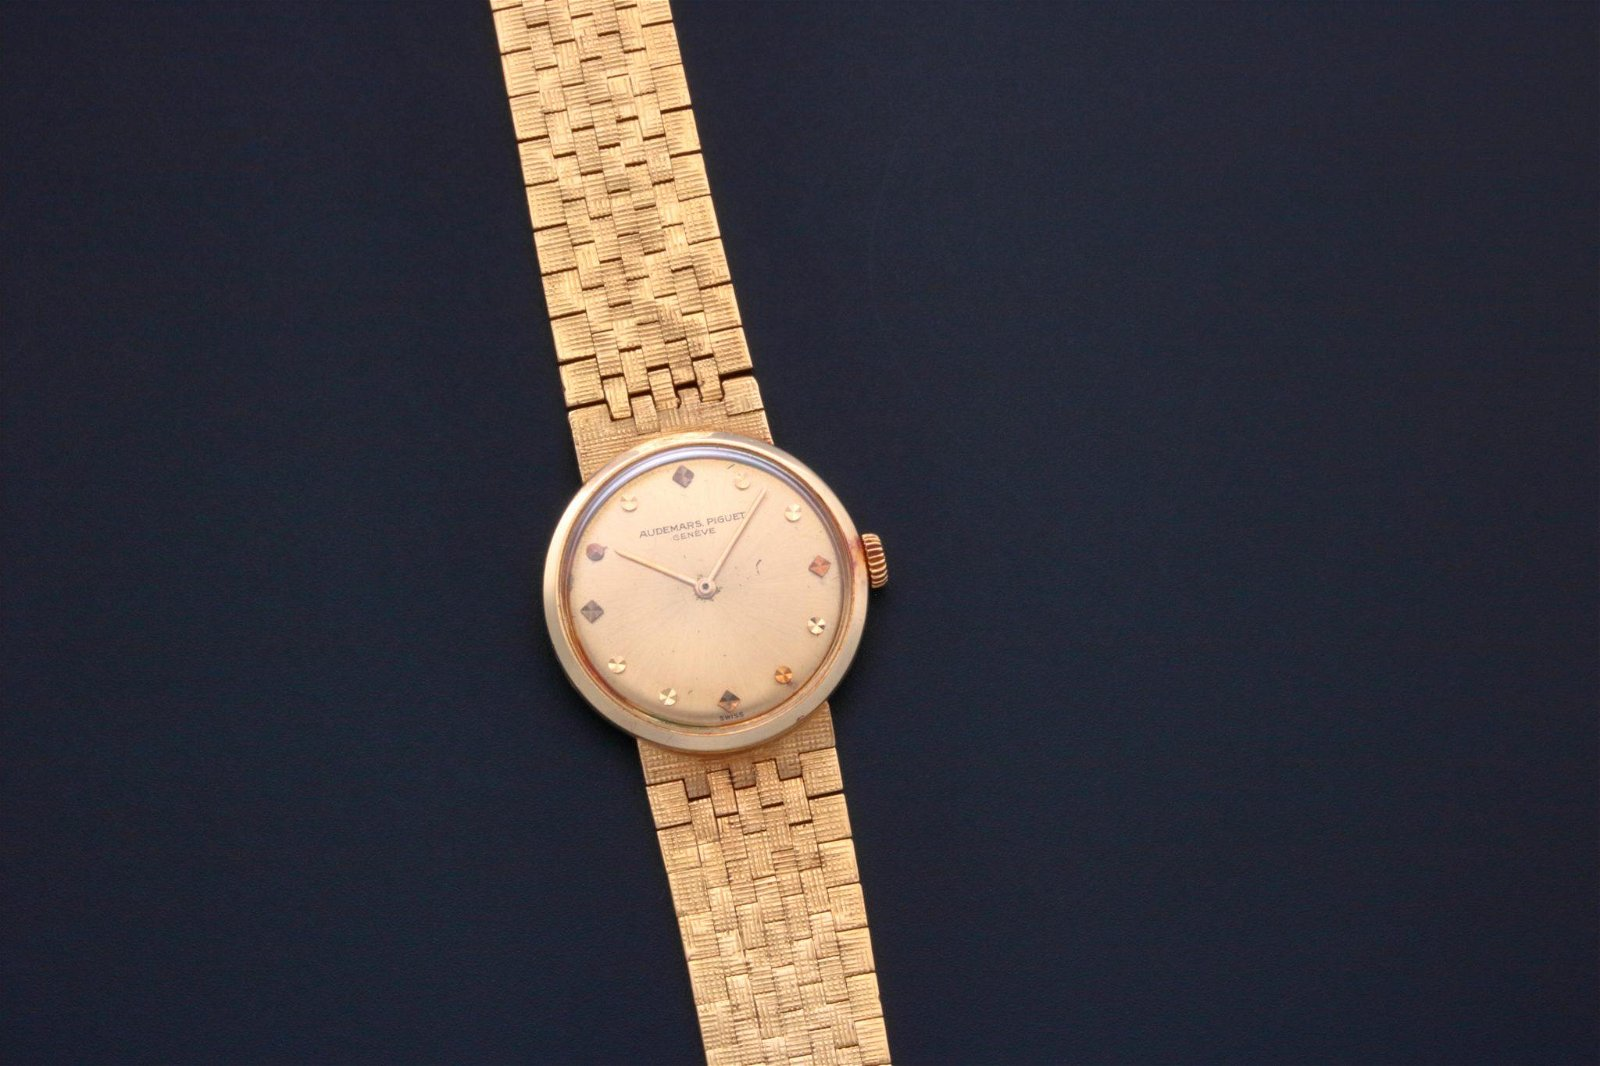 Audemars Piguet Vintage 18k Yellow Gold Cocktail Watch